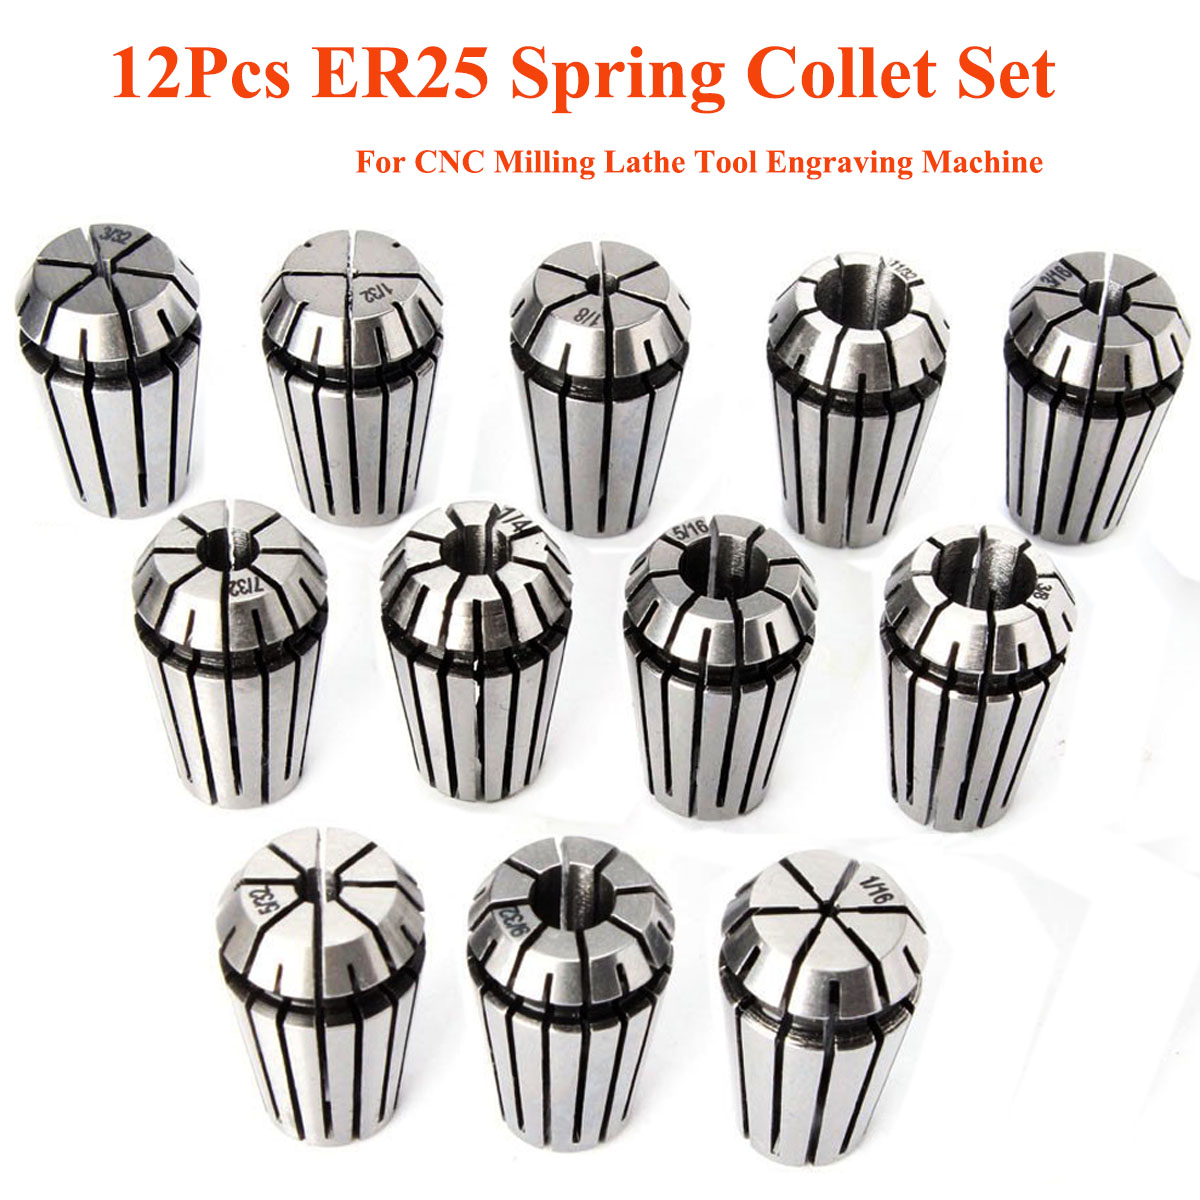 12pcs ER25 Chuck Collet 1/8 to 5/8 Inch Spring Collet Set Machine Tool Holder ER25 Collet for CNC Milling Lathe Tool детский 357337 novotech